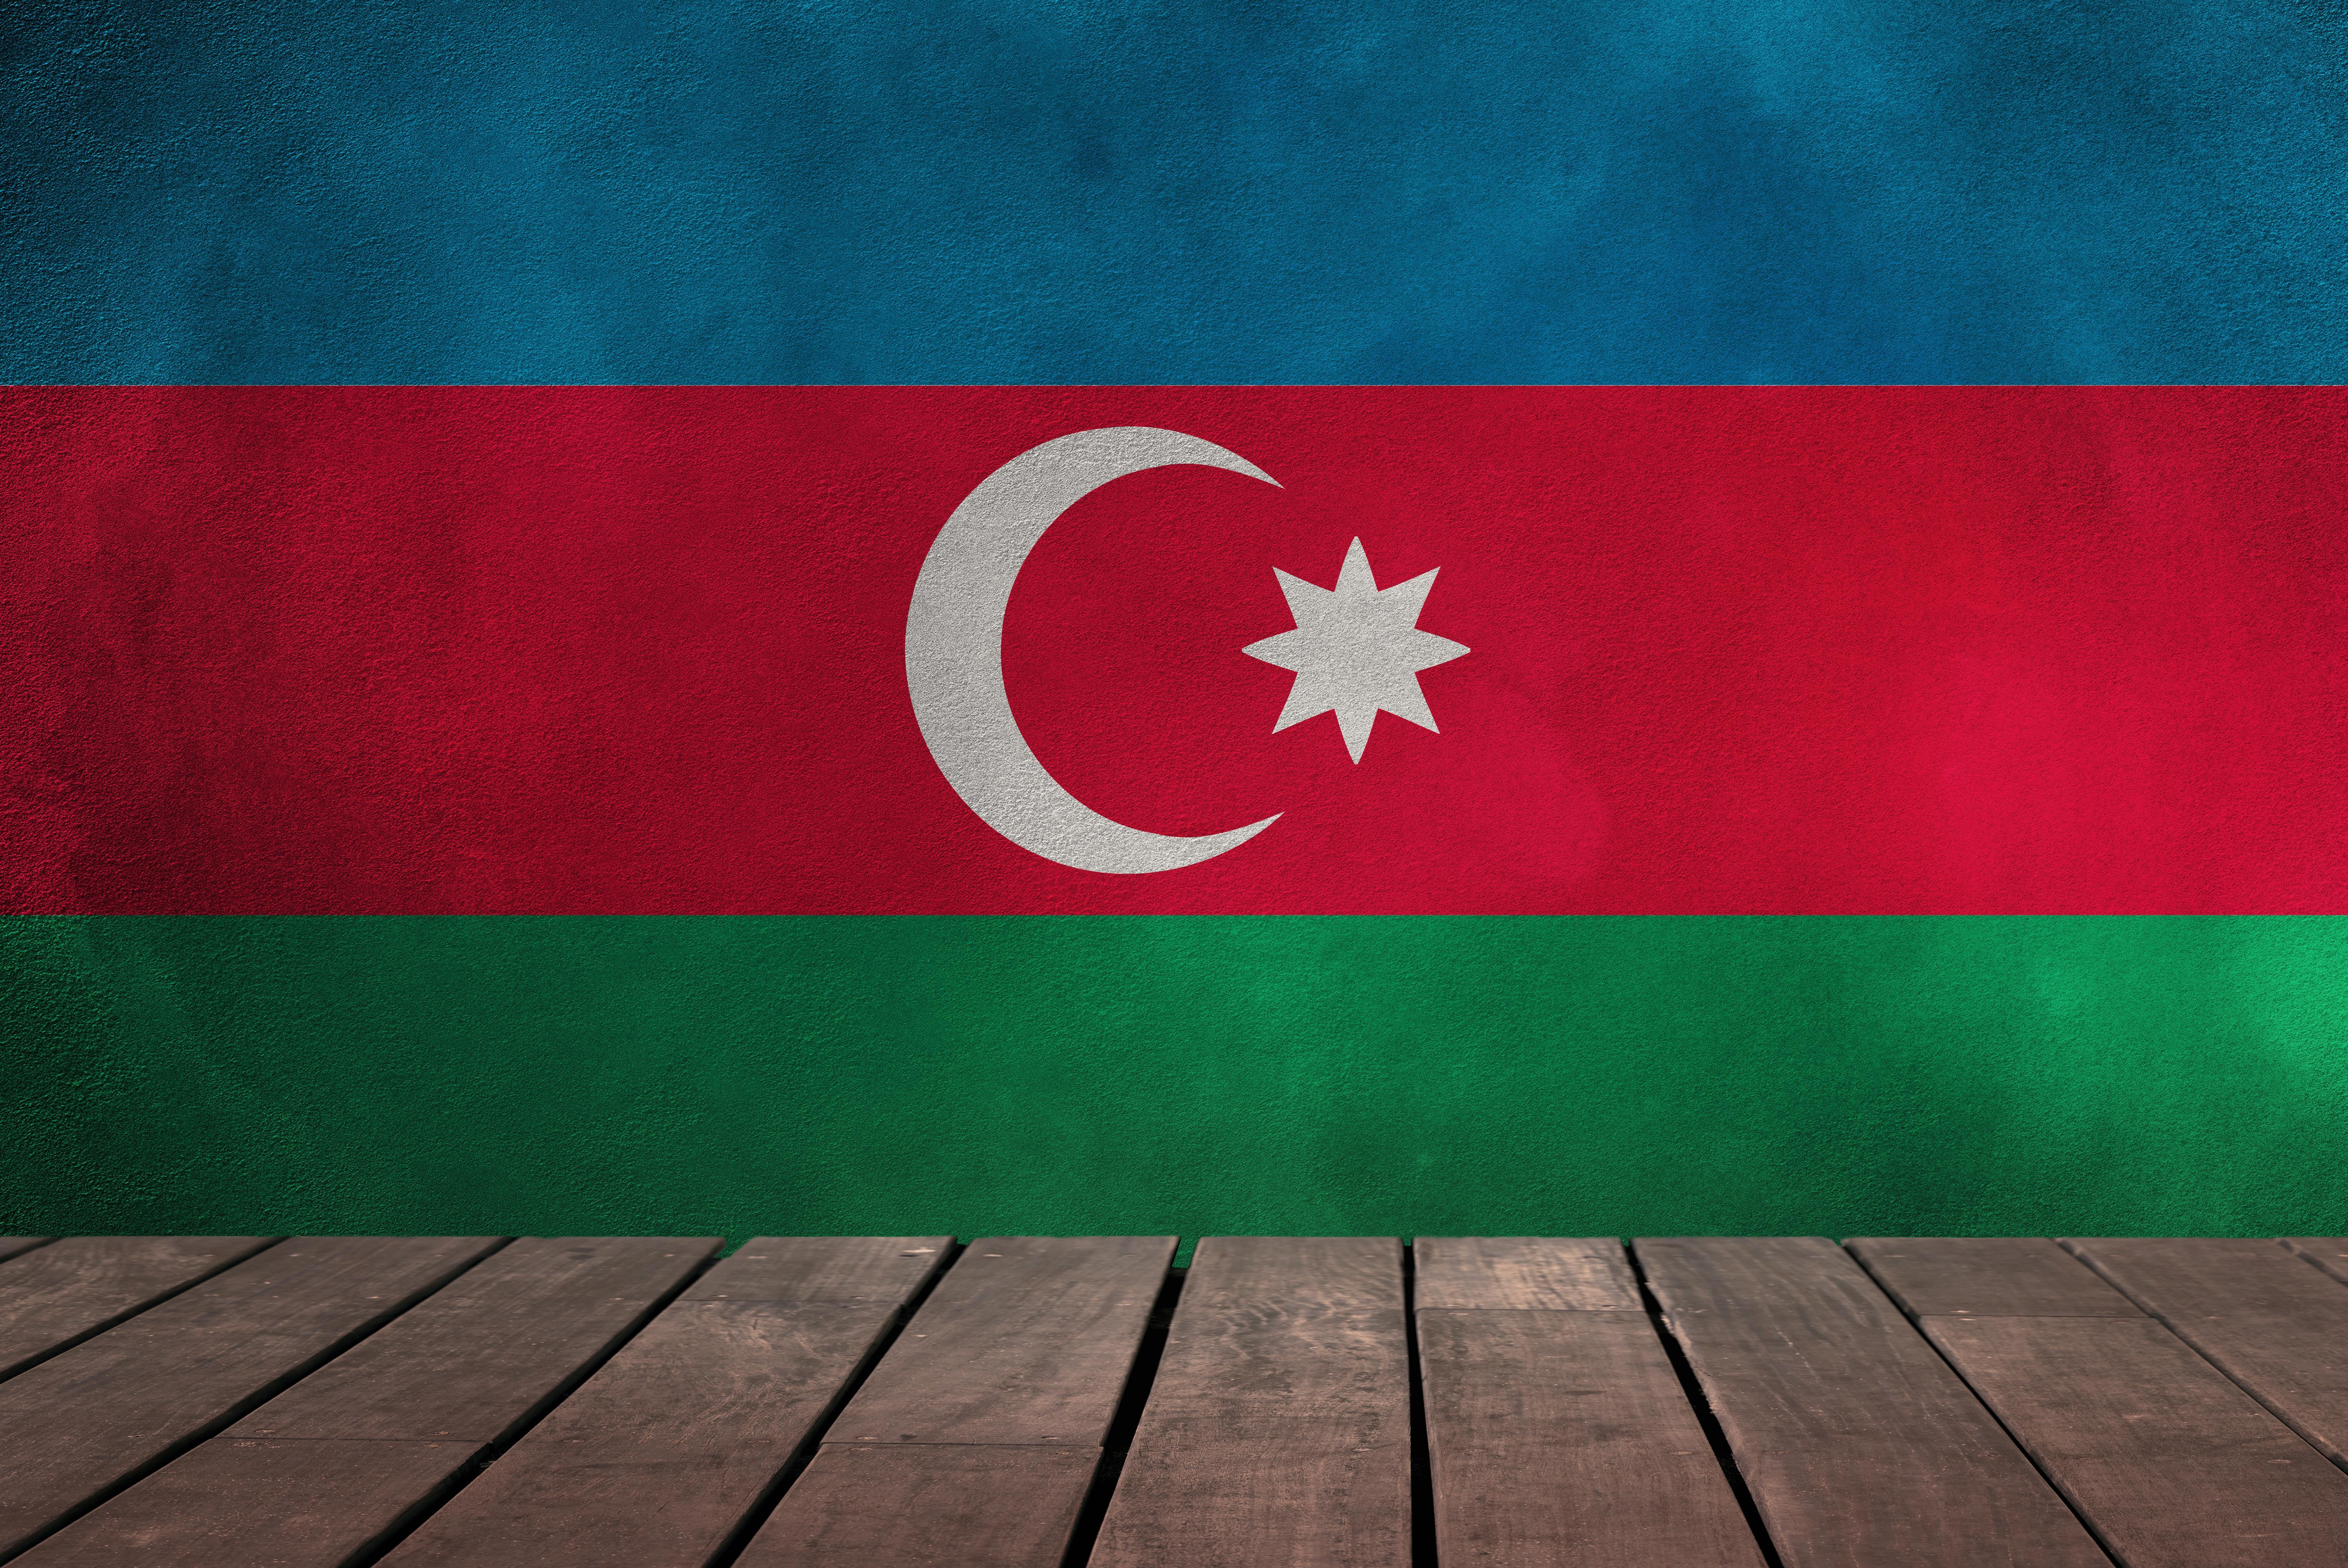 flag of Azerbaijan 5k Retina Ultra HD Wallpaper | Background Image ...